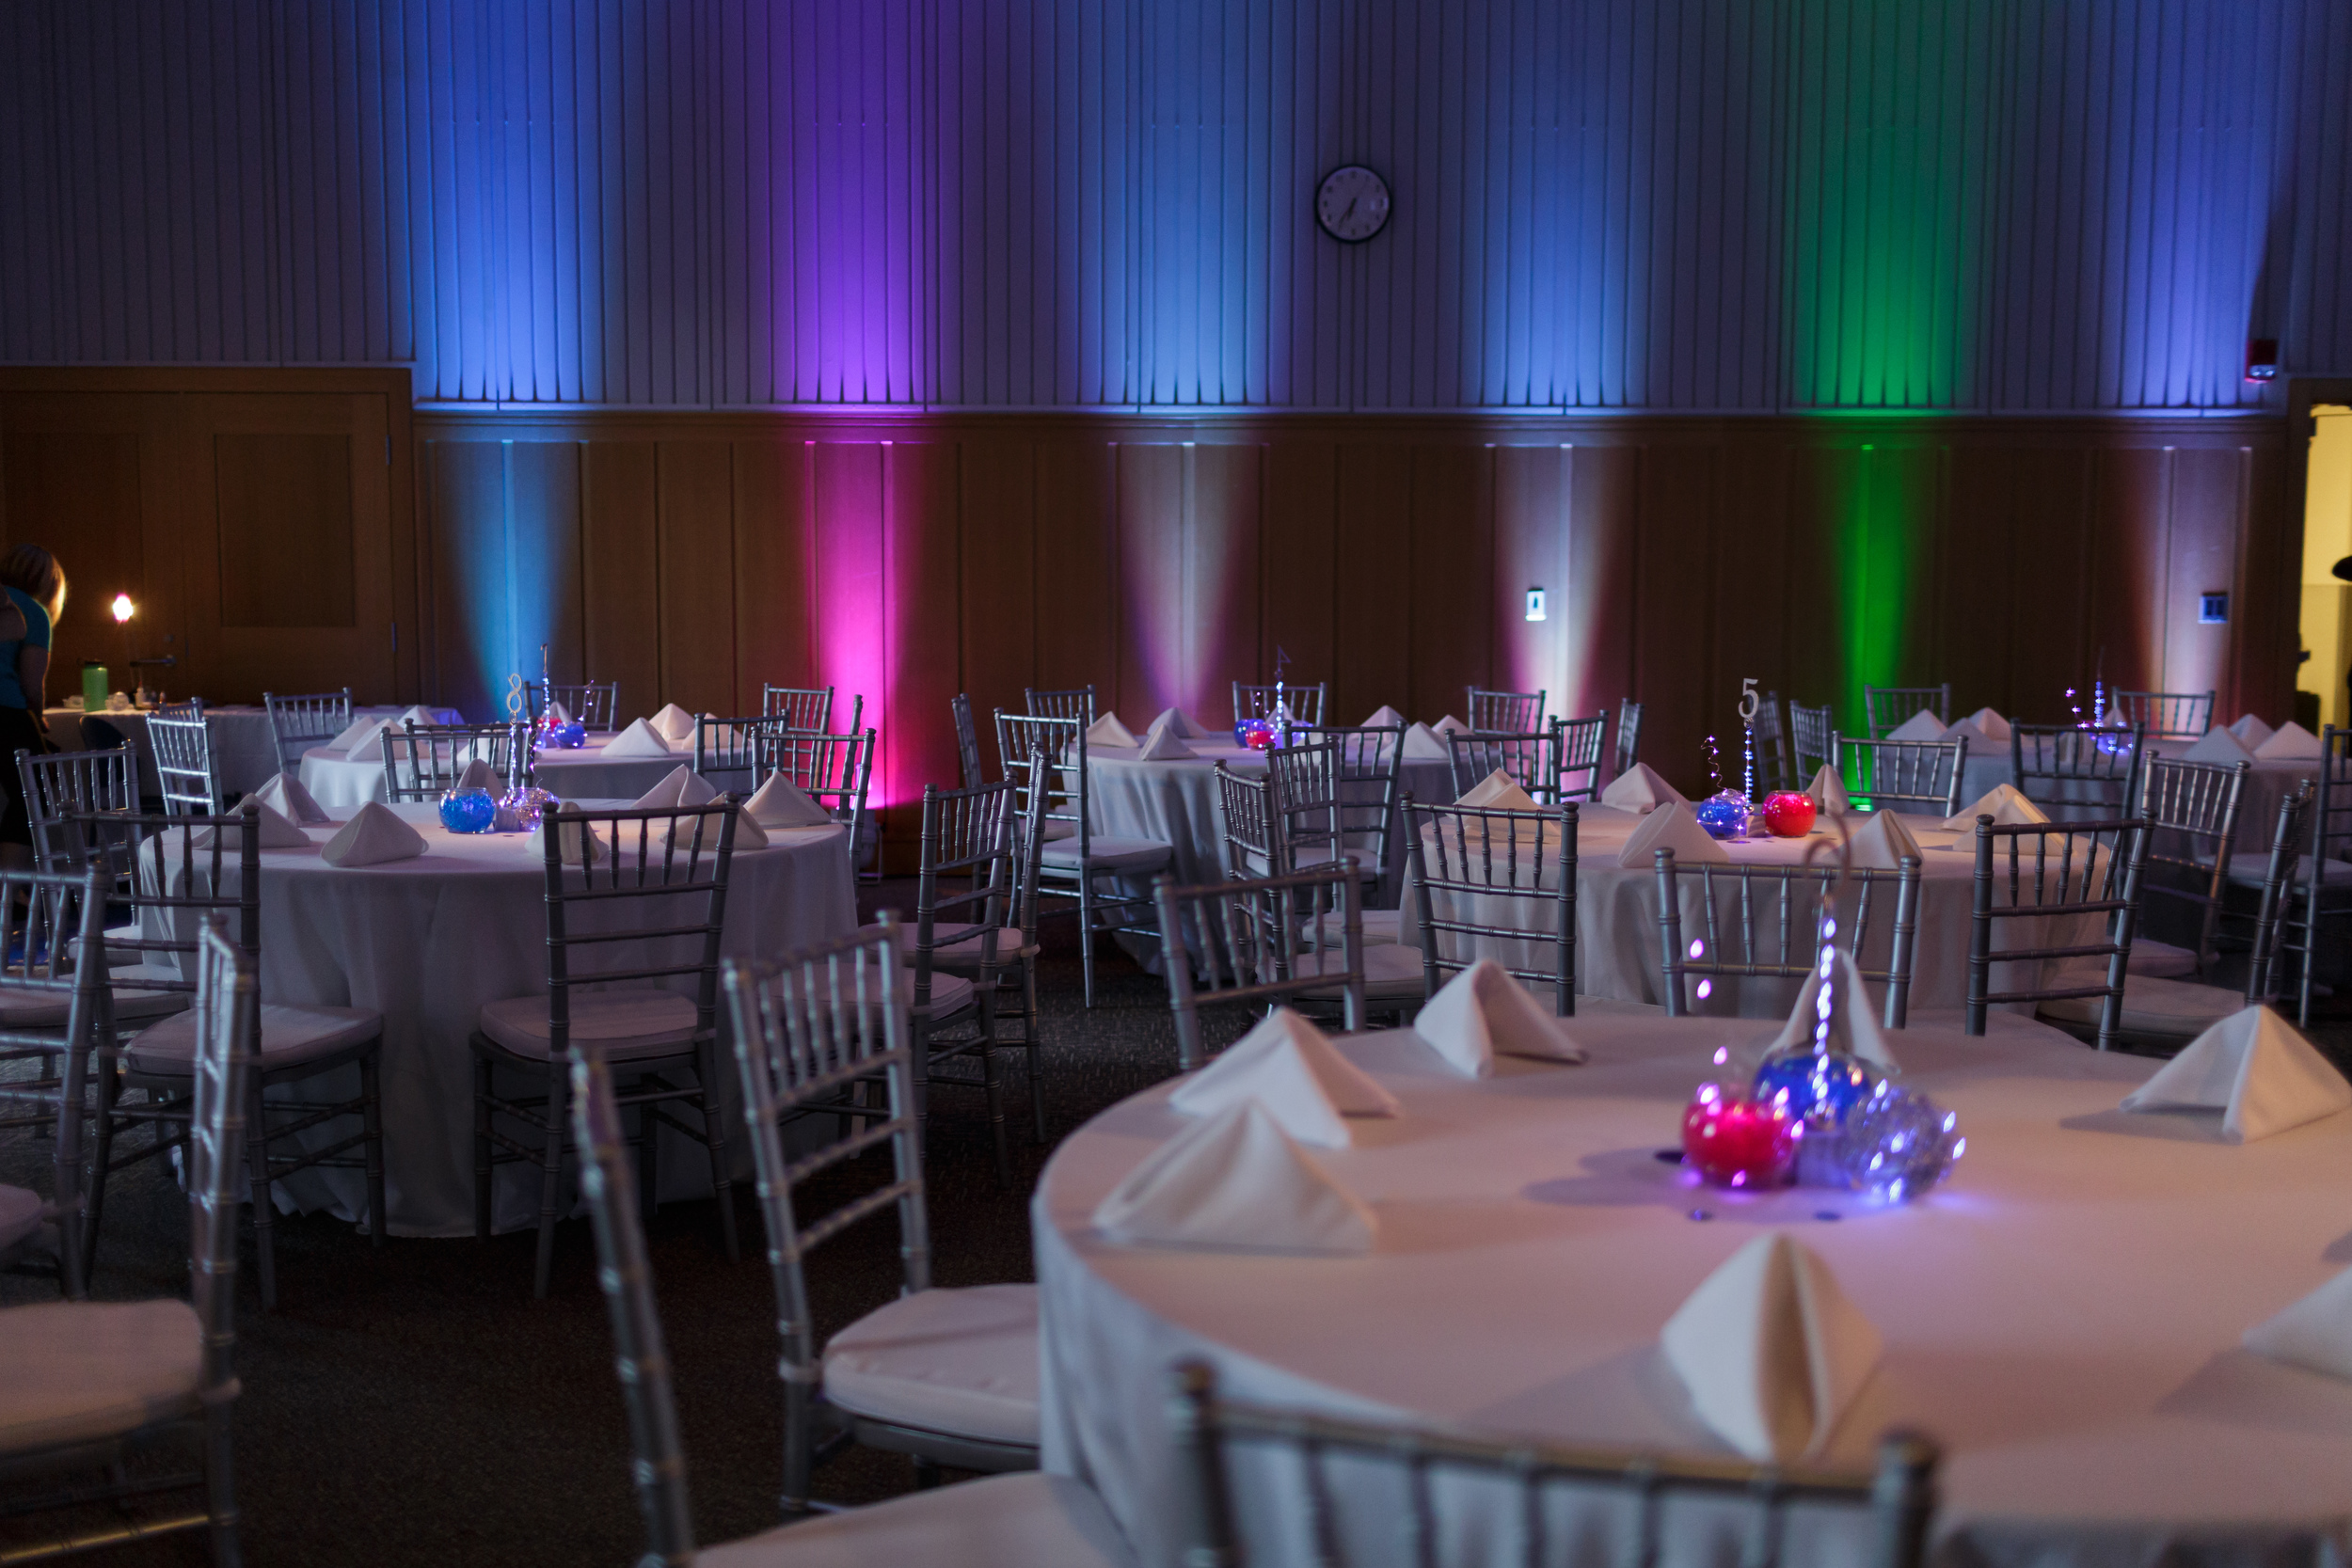 Lily_Ann_Arbor_Bat_Mitzvah_photography_16